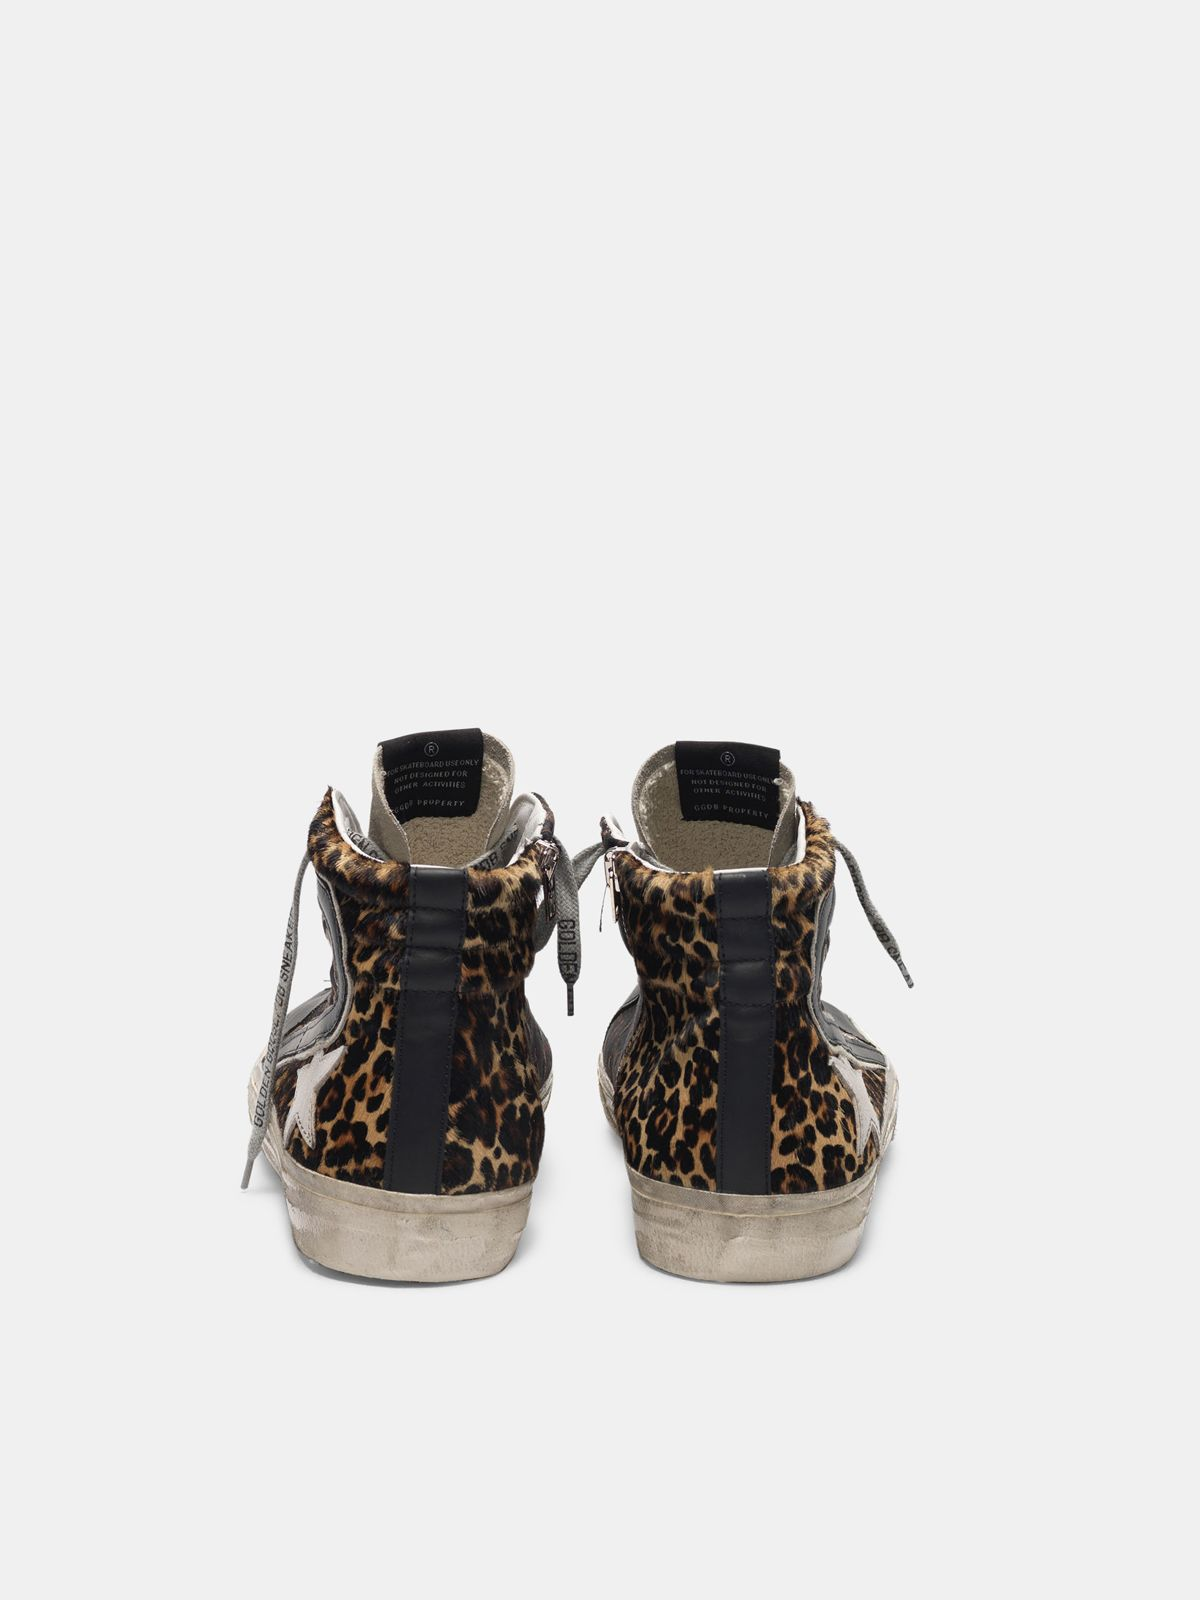 Golden Goose - Sneakers Slide in cavallino stampa leopardata in